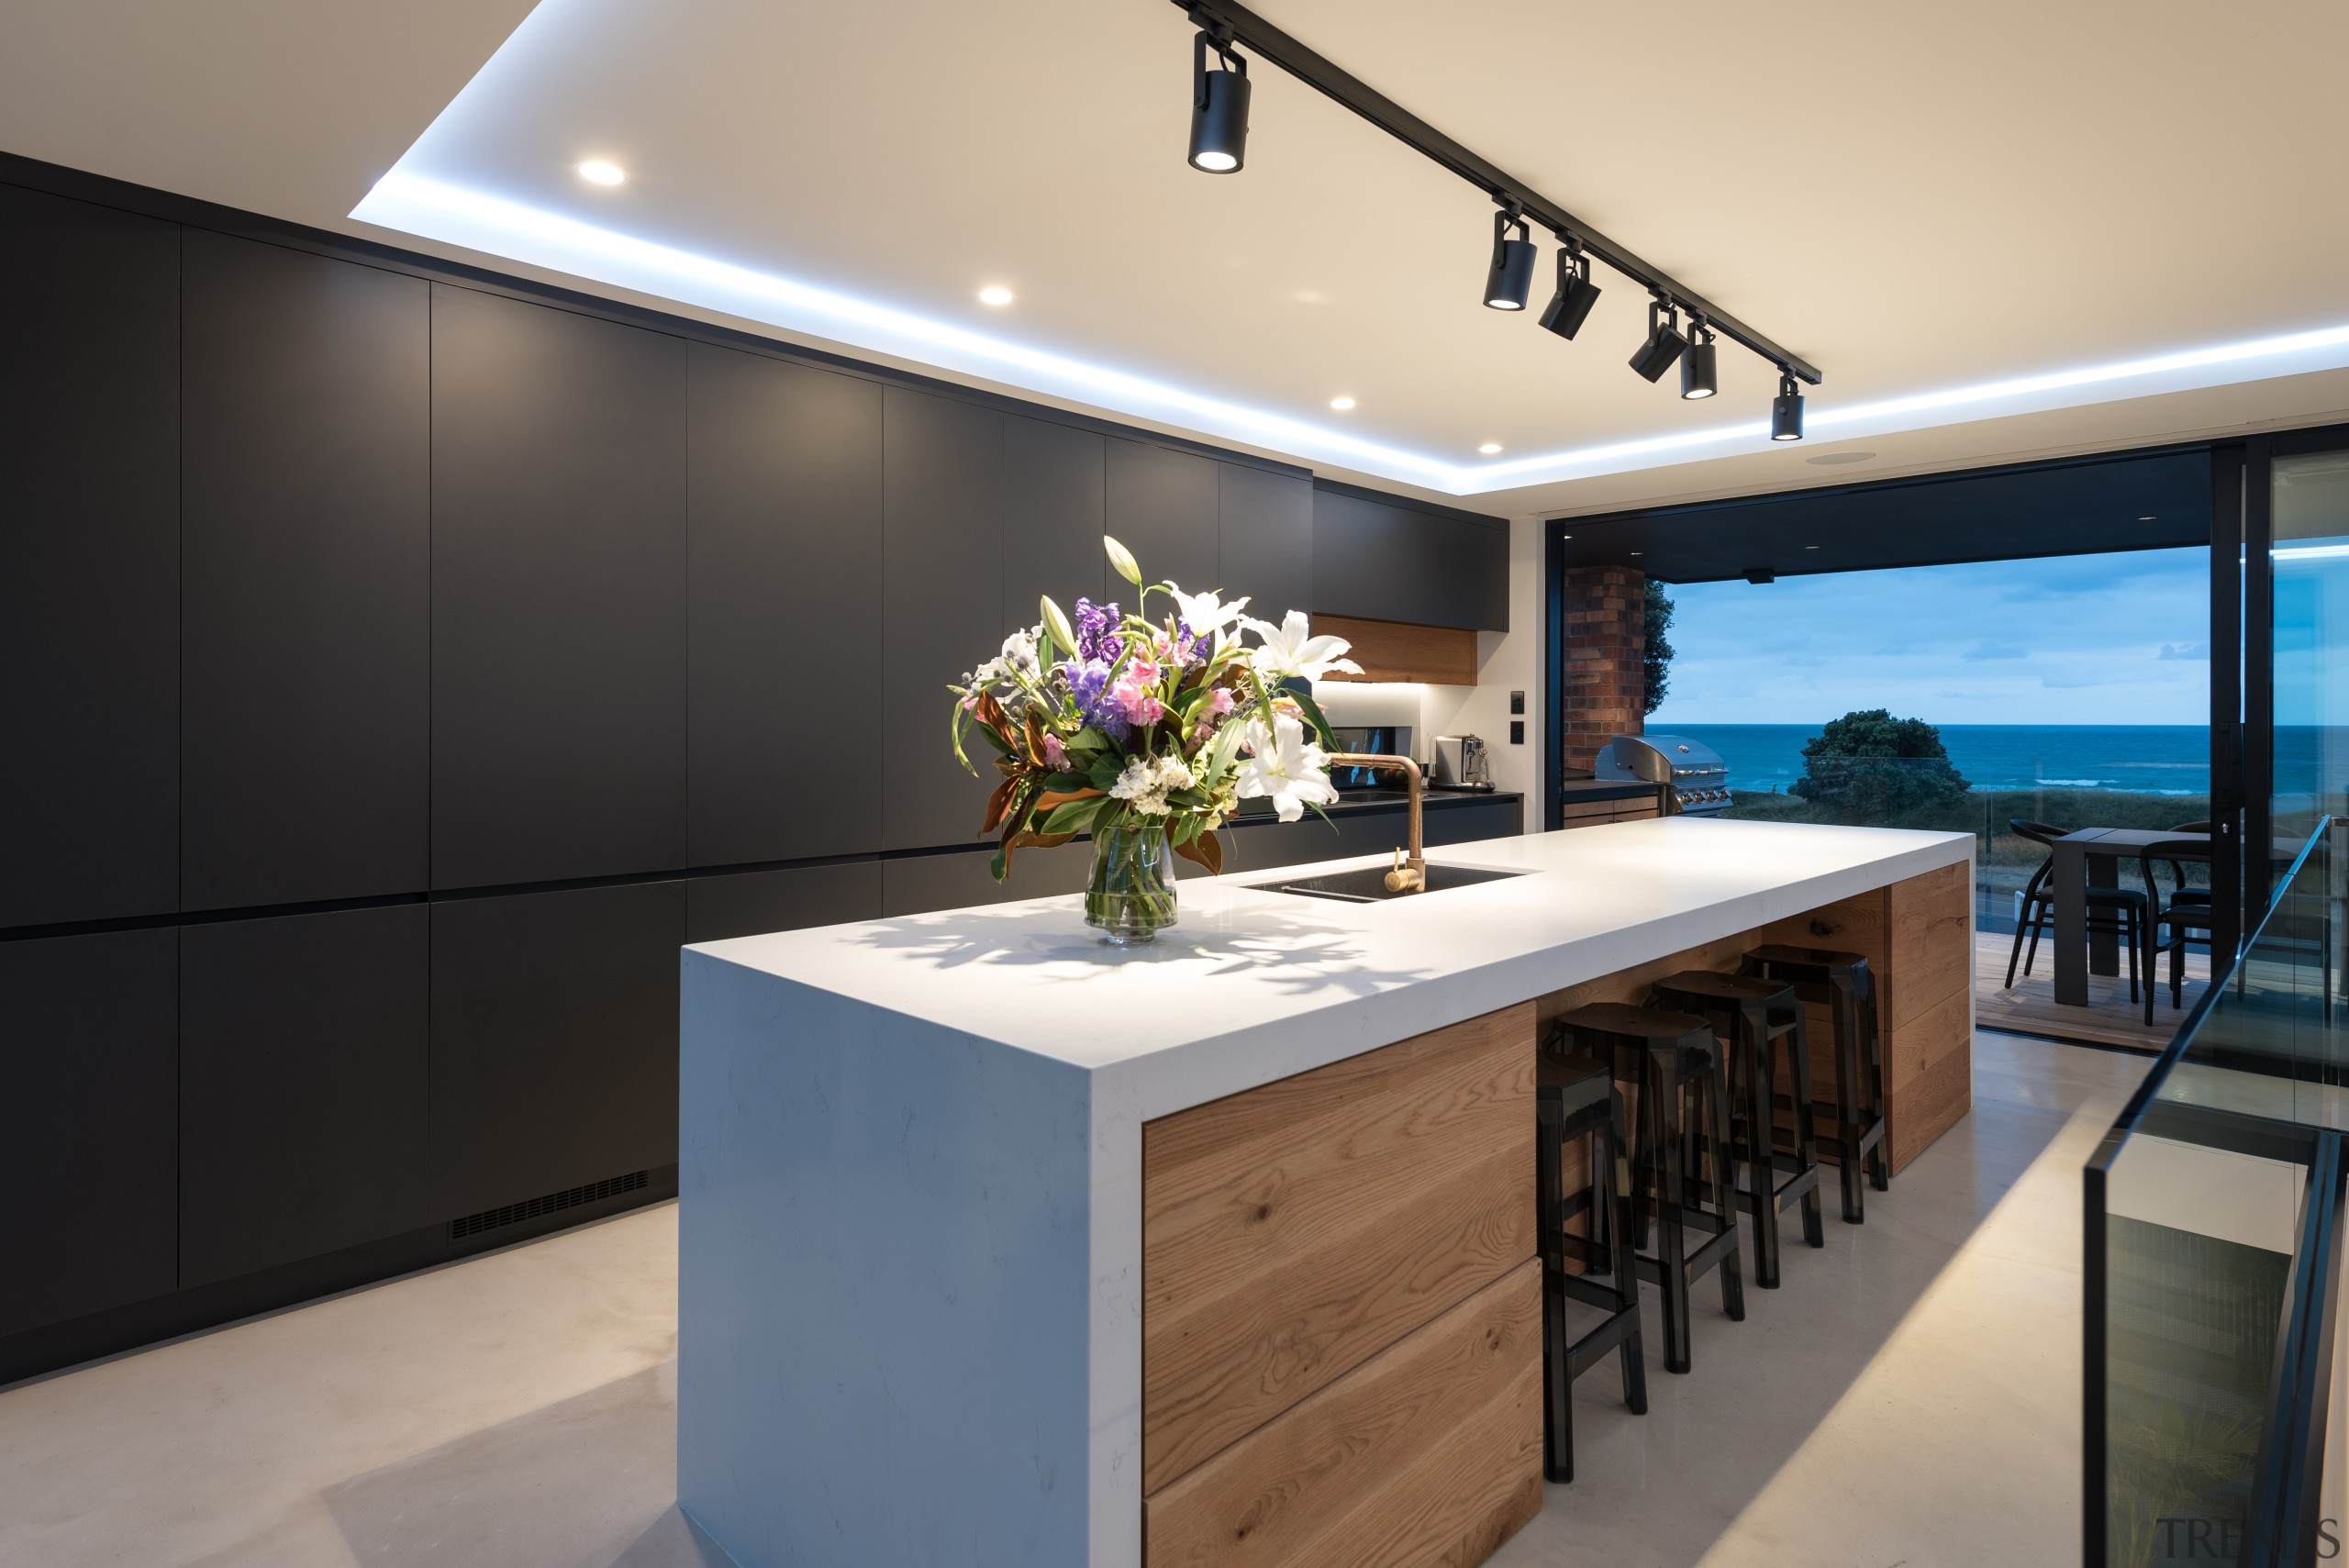 A white waterfall benchtop flowing over a wood-fronted architecture, countertop, interior design, kitchen, waterfall benchtop,  timber, black cabinetry